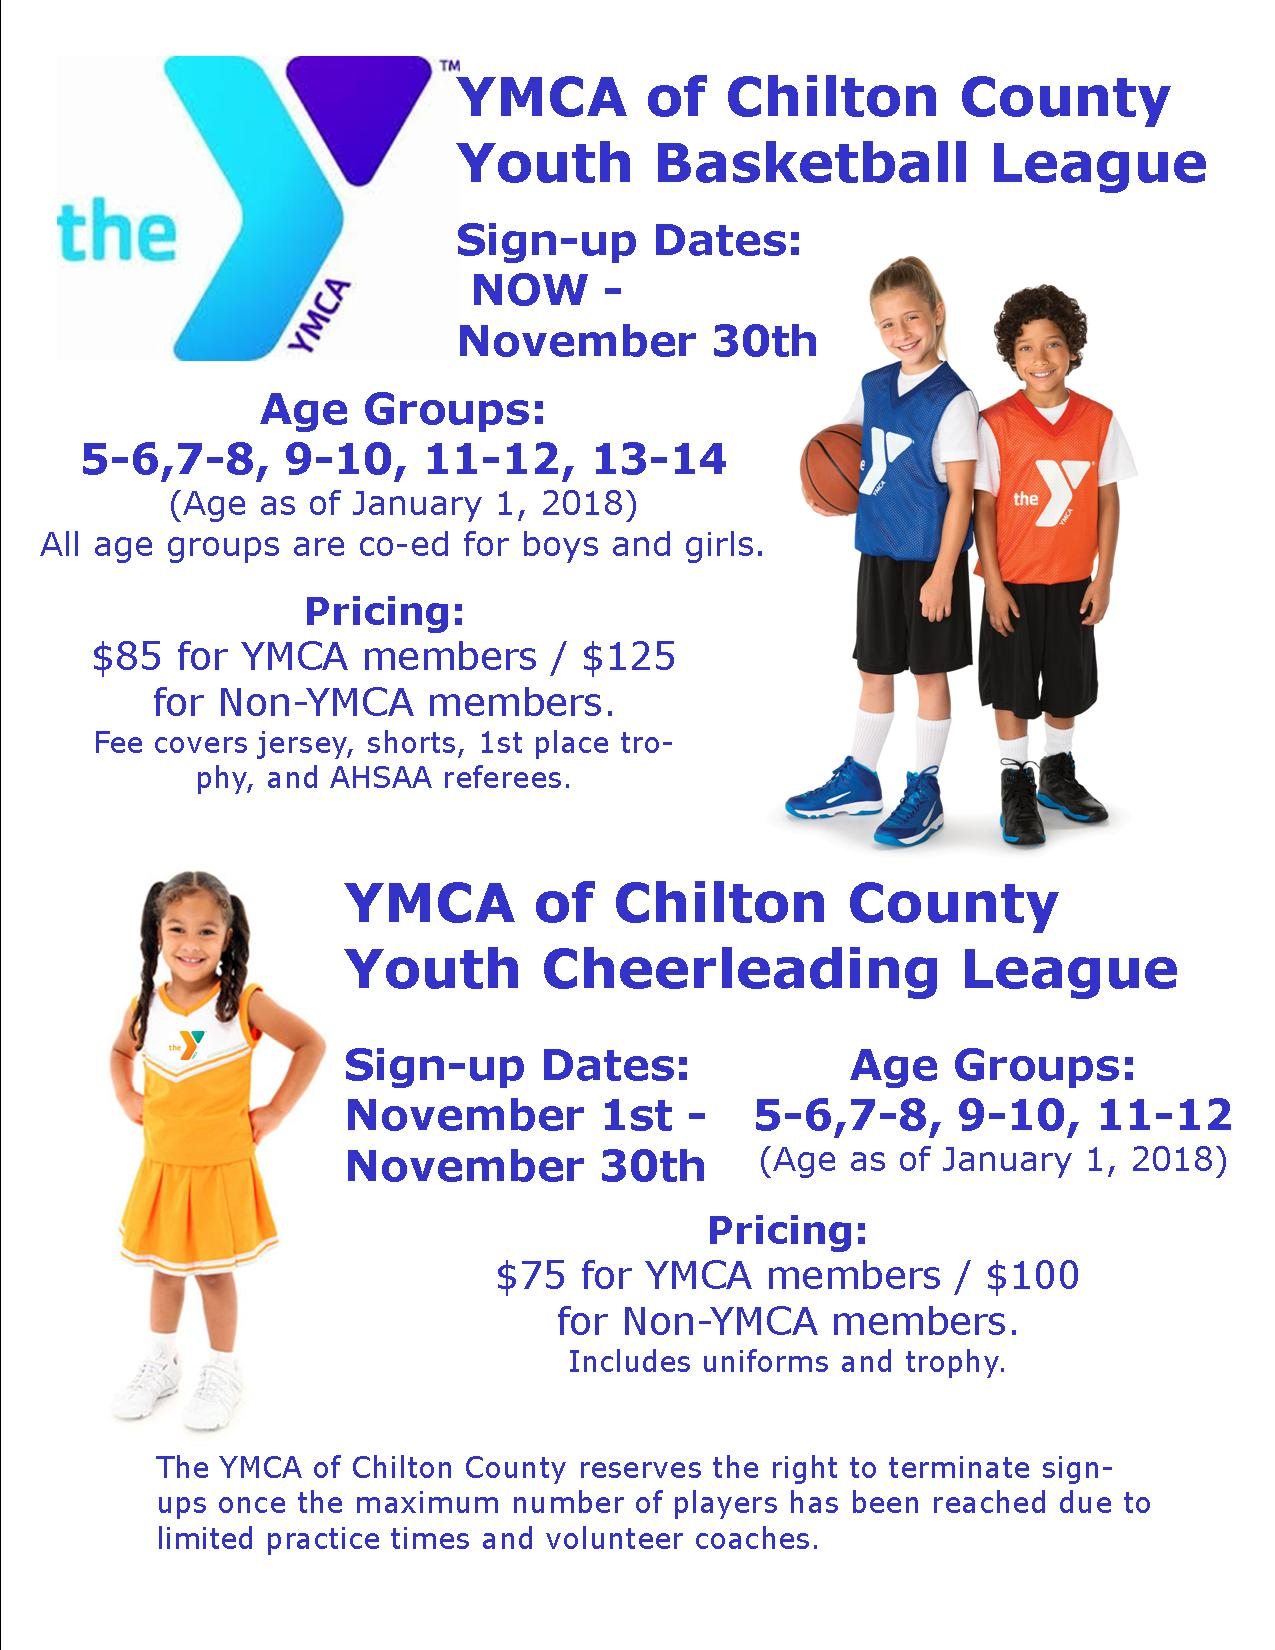 YMCA of Chilton County